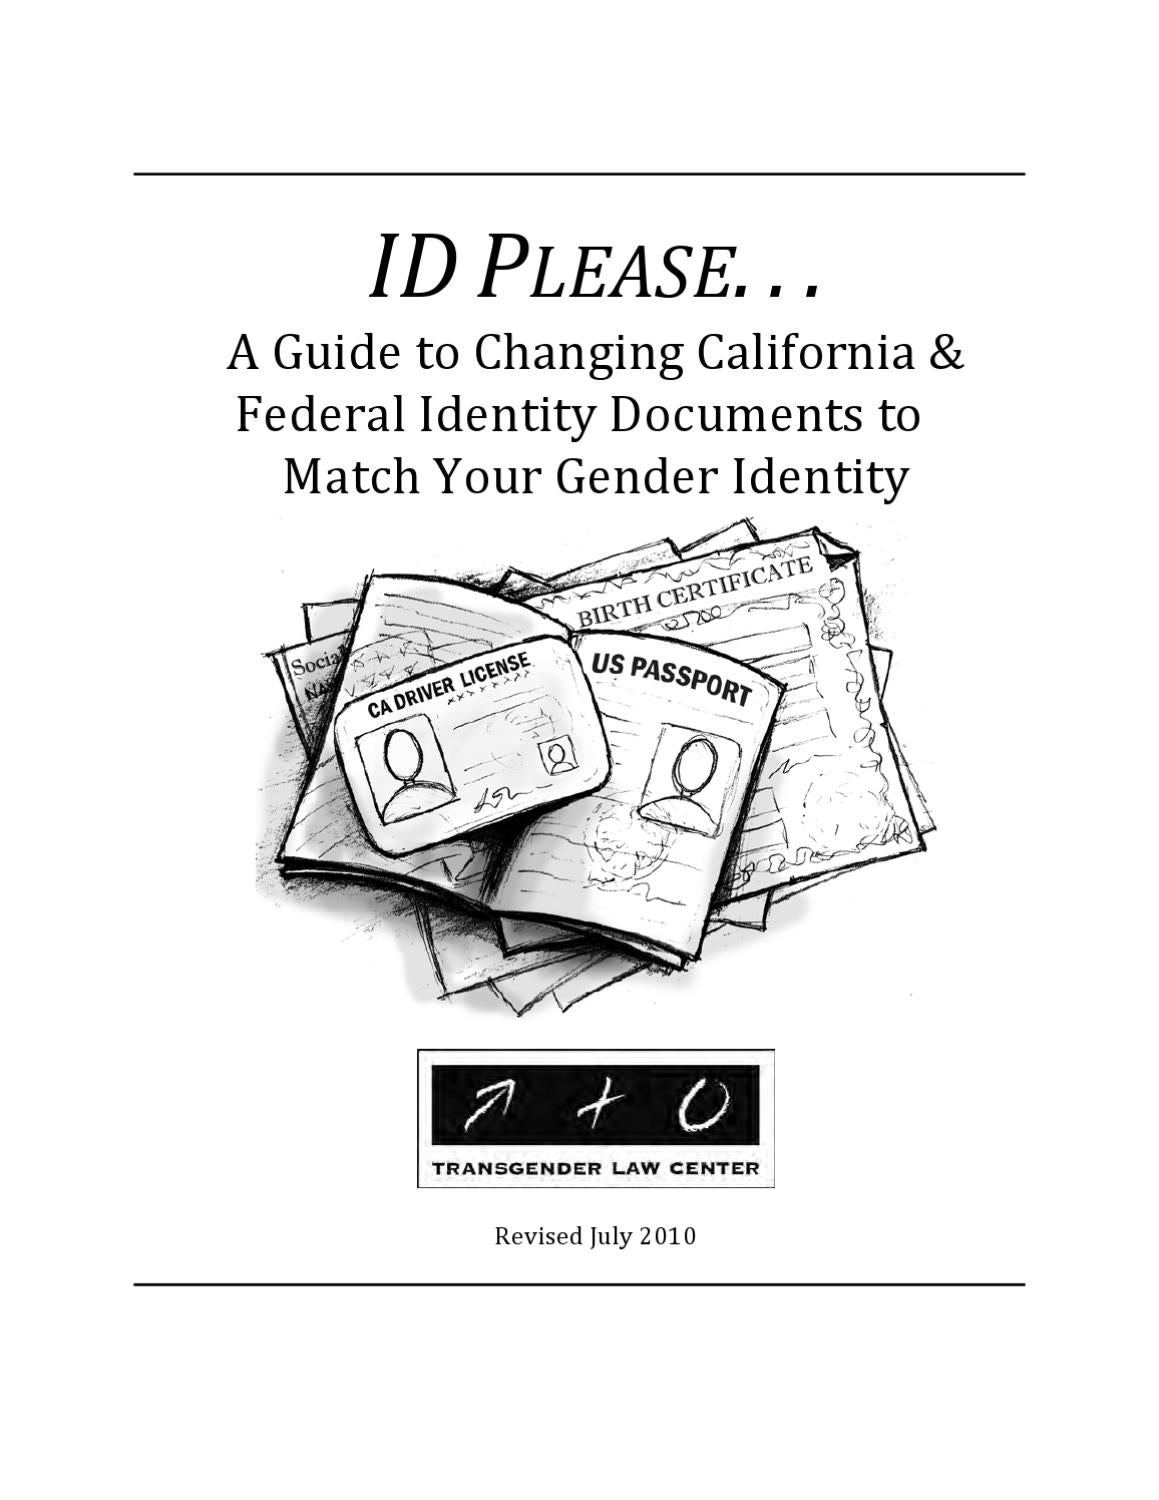 ID Please A Guide To Changing California And Federal IDs To